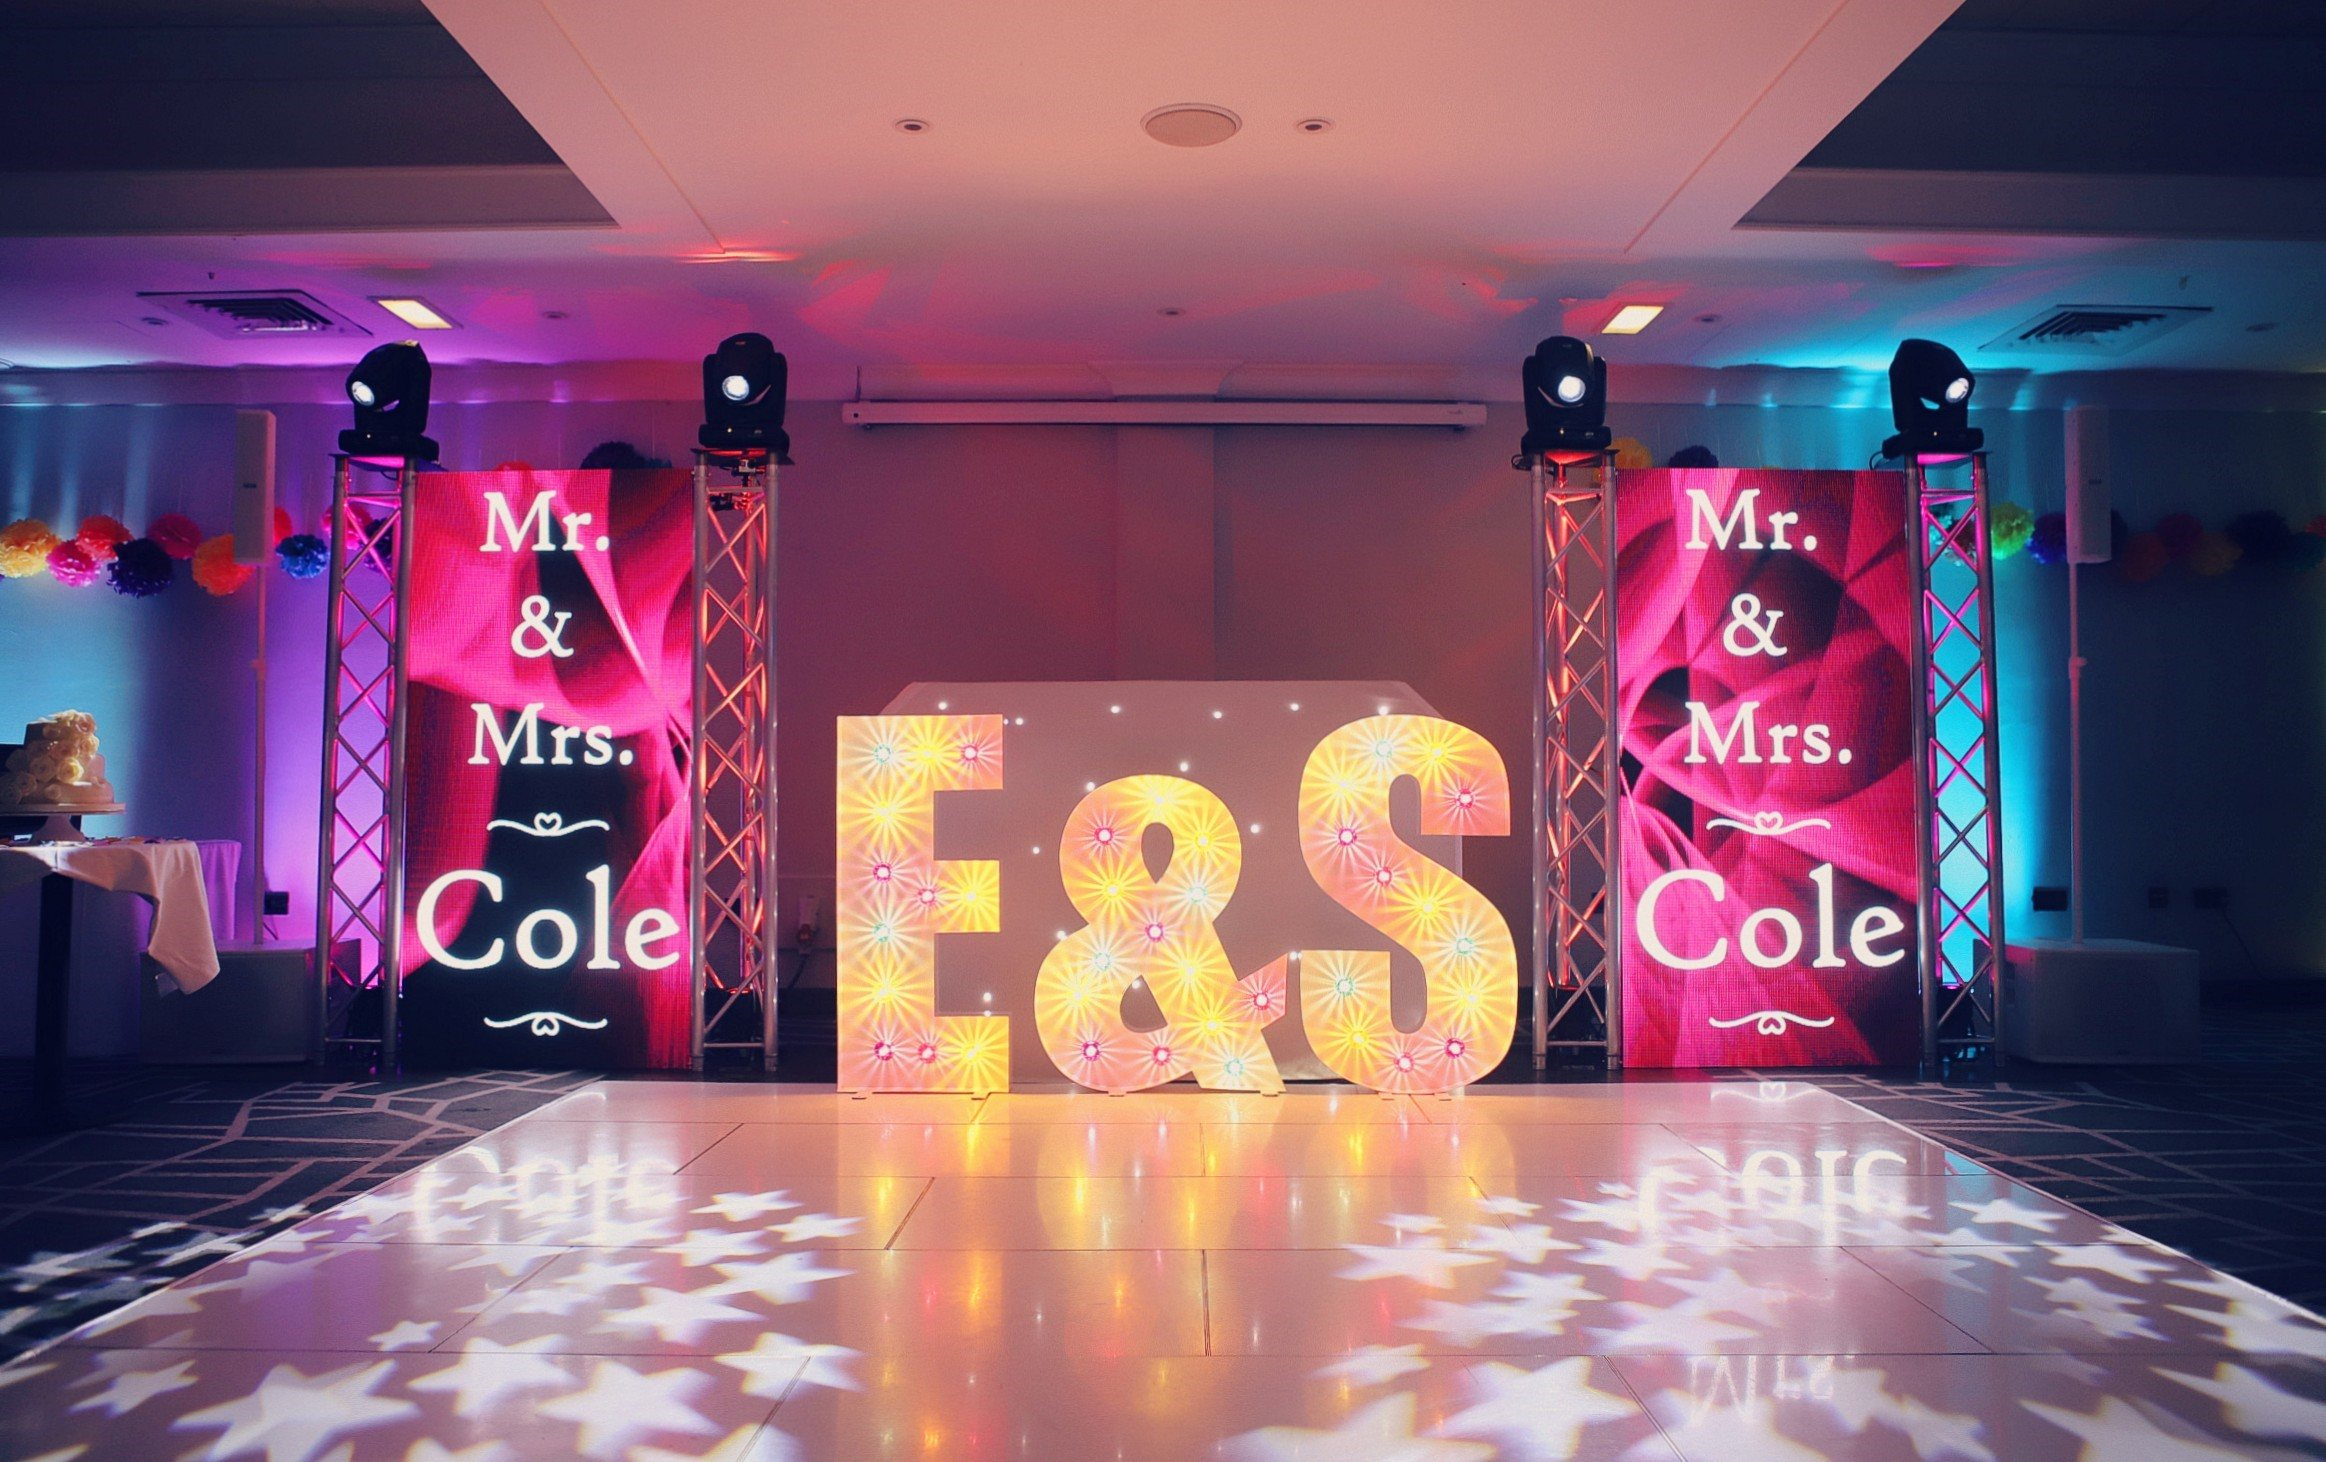 Wedding production by Humphries AV showing pink and yellow theme